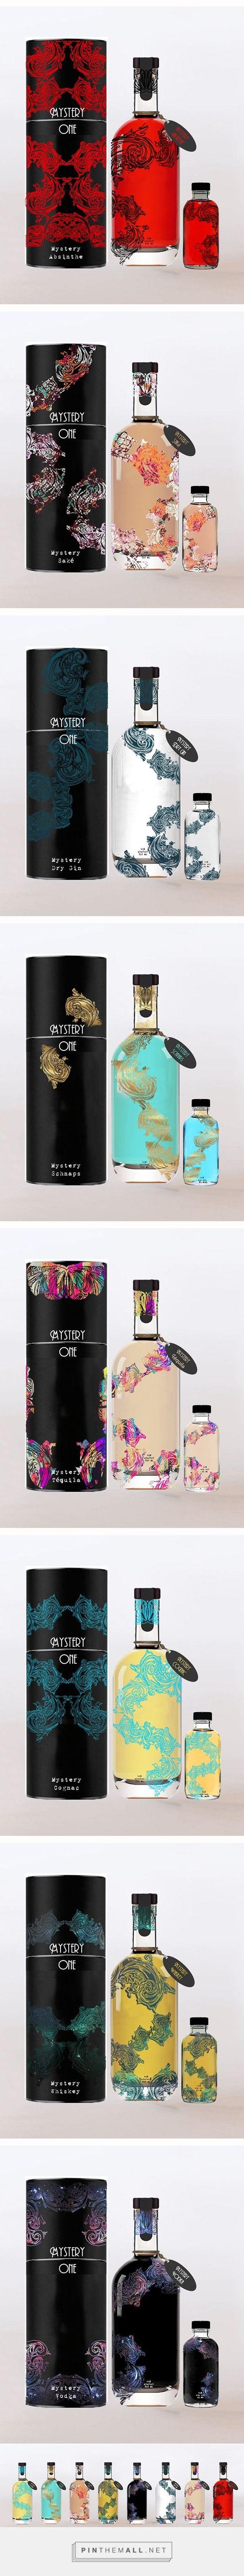 Mystery One high gradation alcoholic beverages. Design by Cynthia Quemener Pin curated by #SFields99 #packaging #design